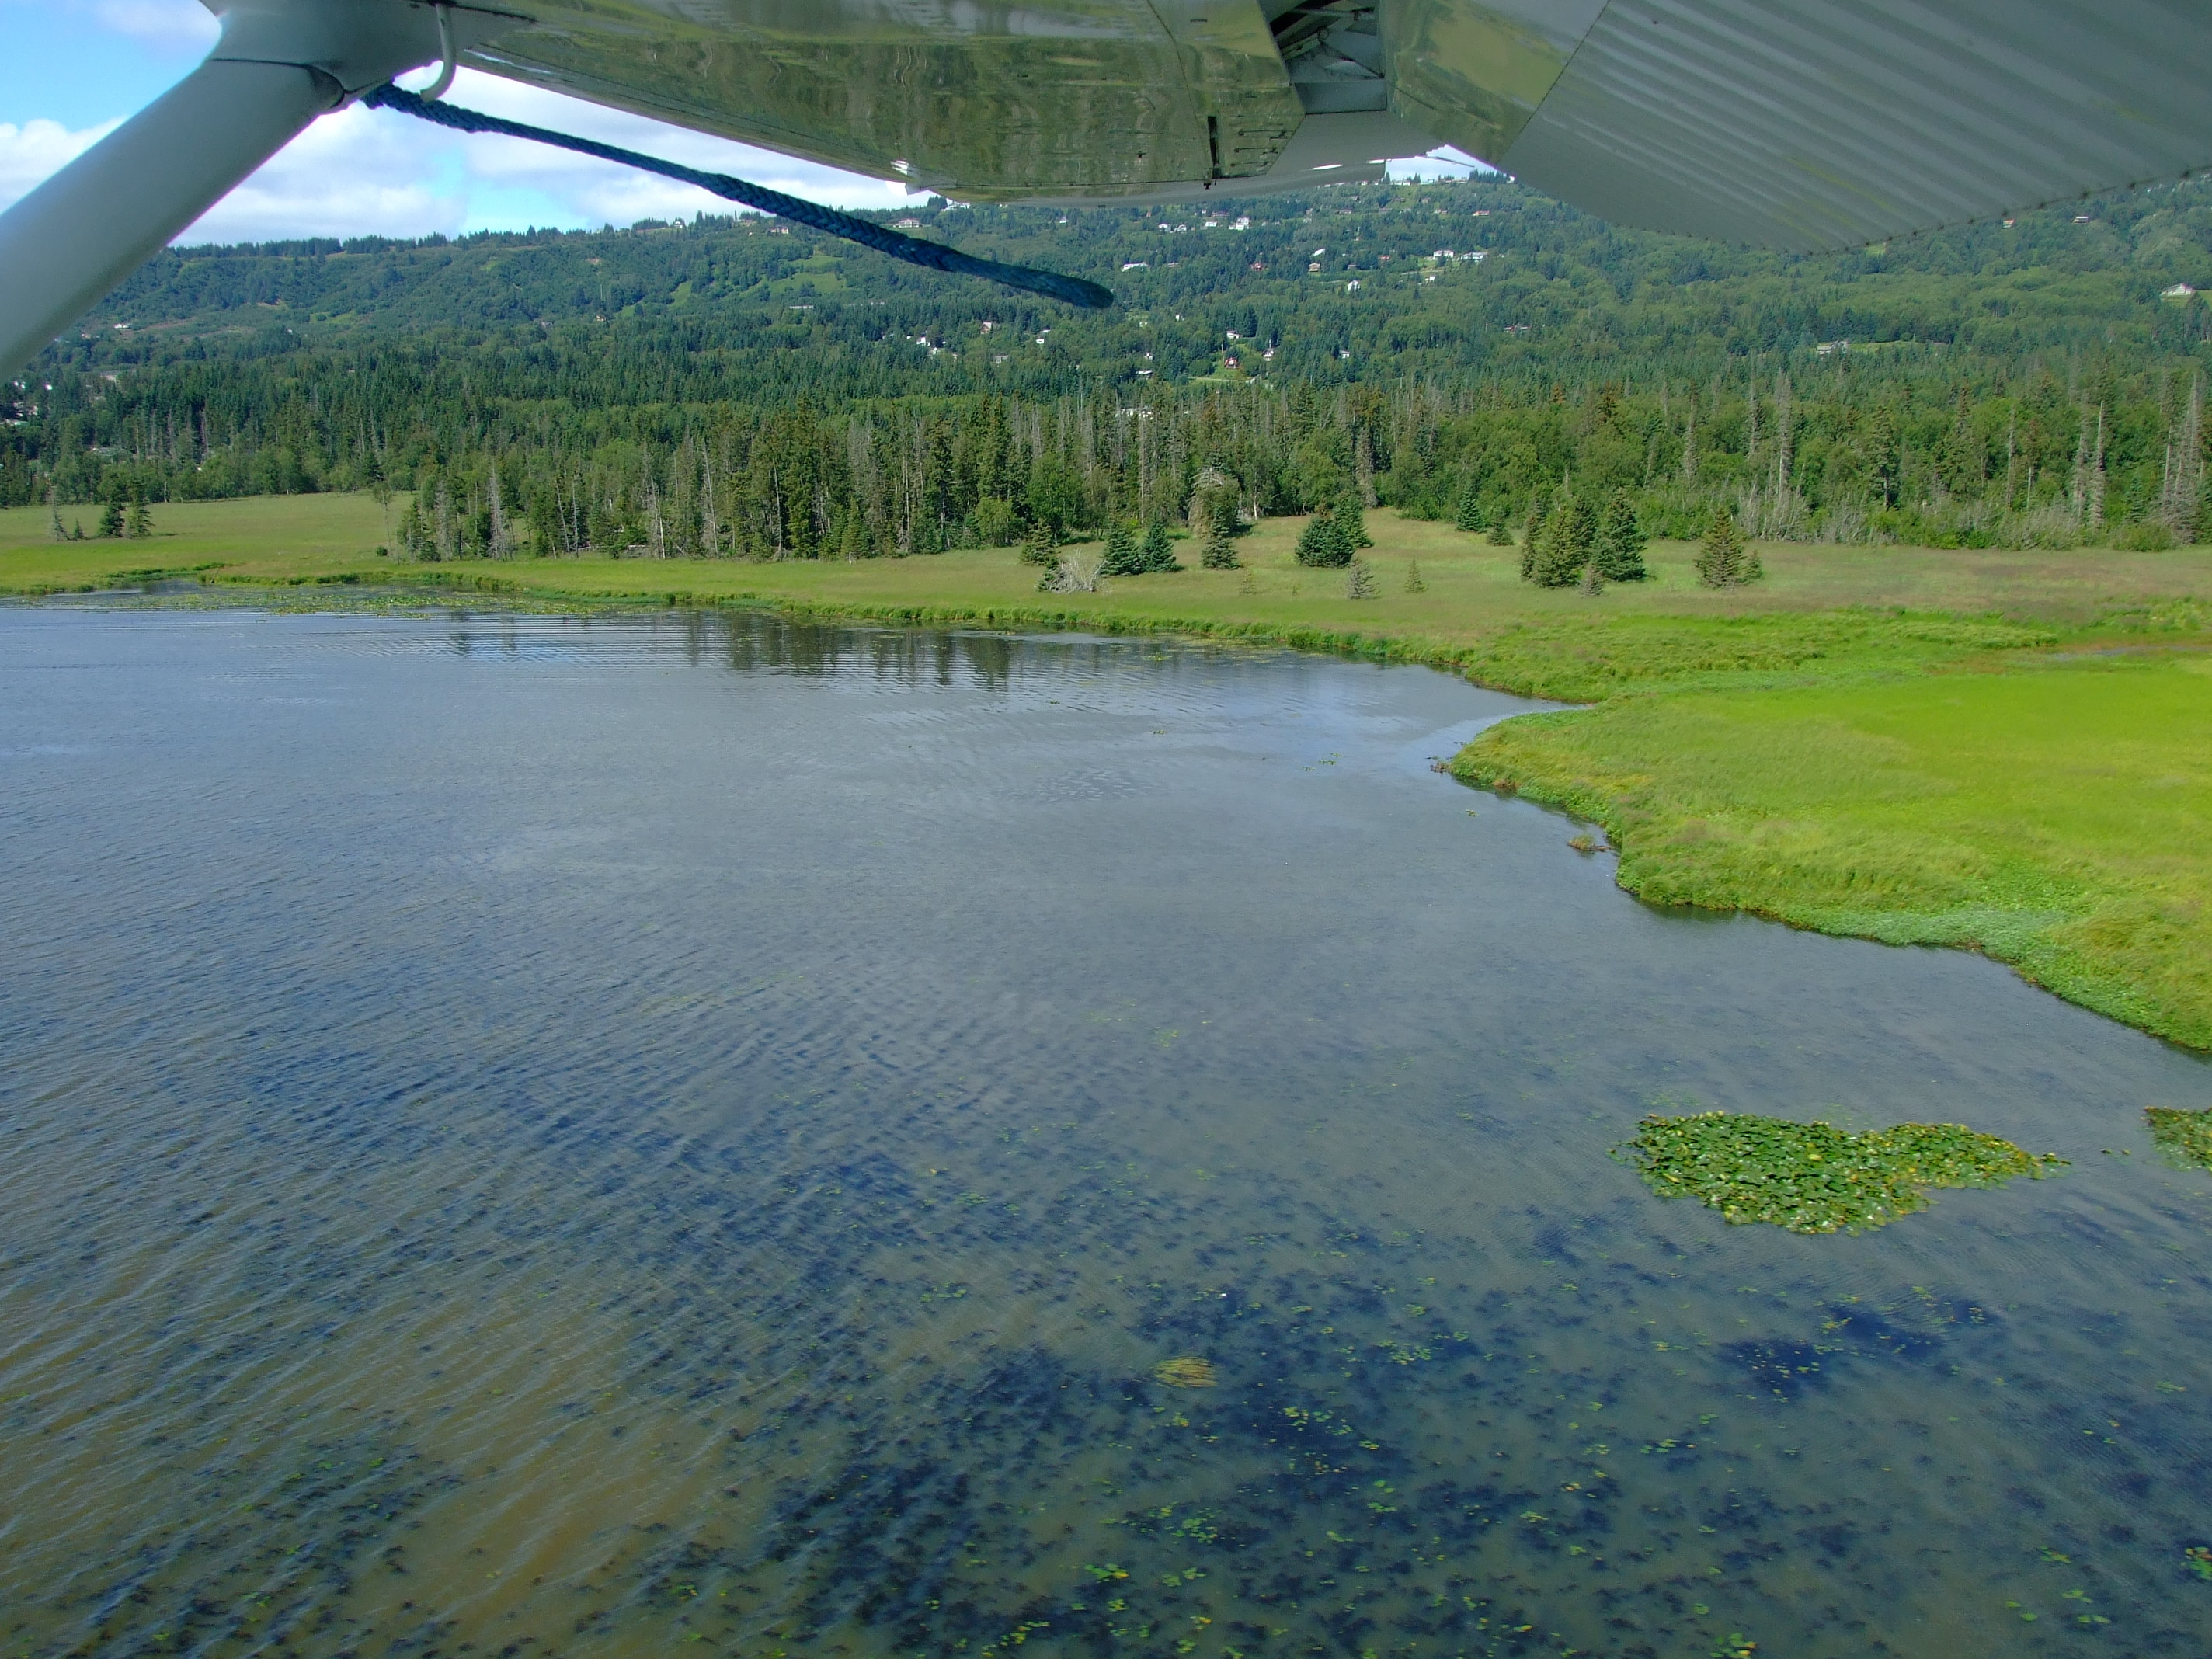 Our final descent onto Beluga Lake in the opposite direction to our take off.